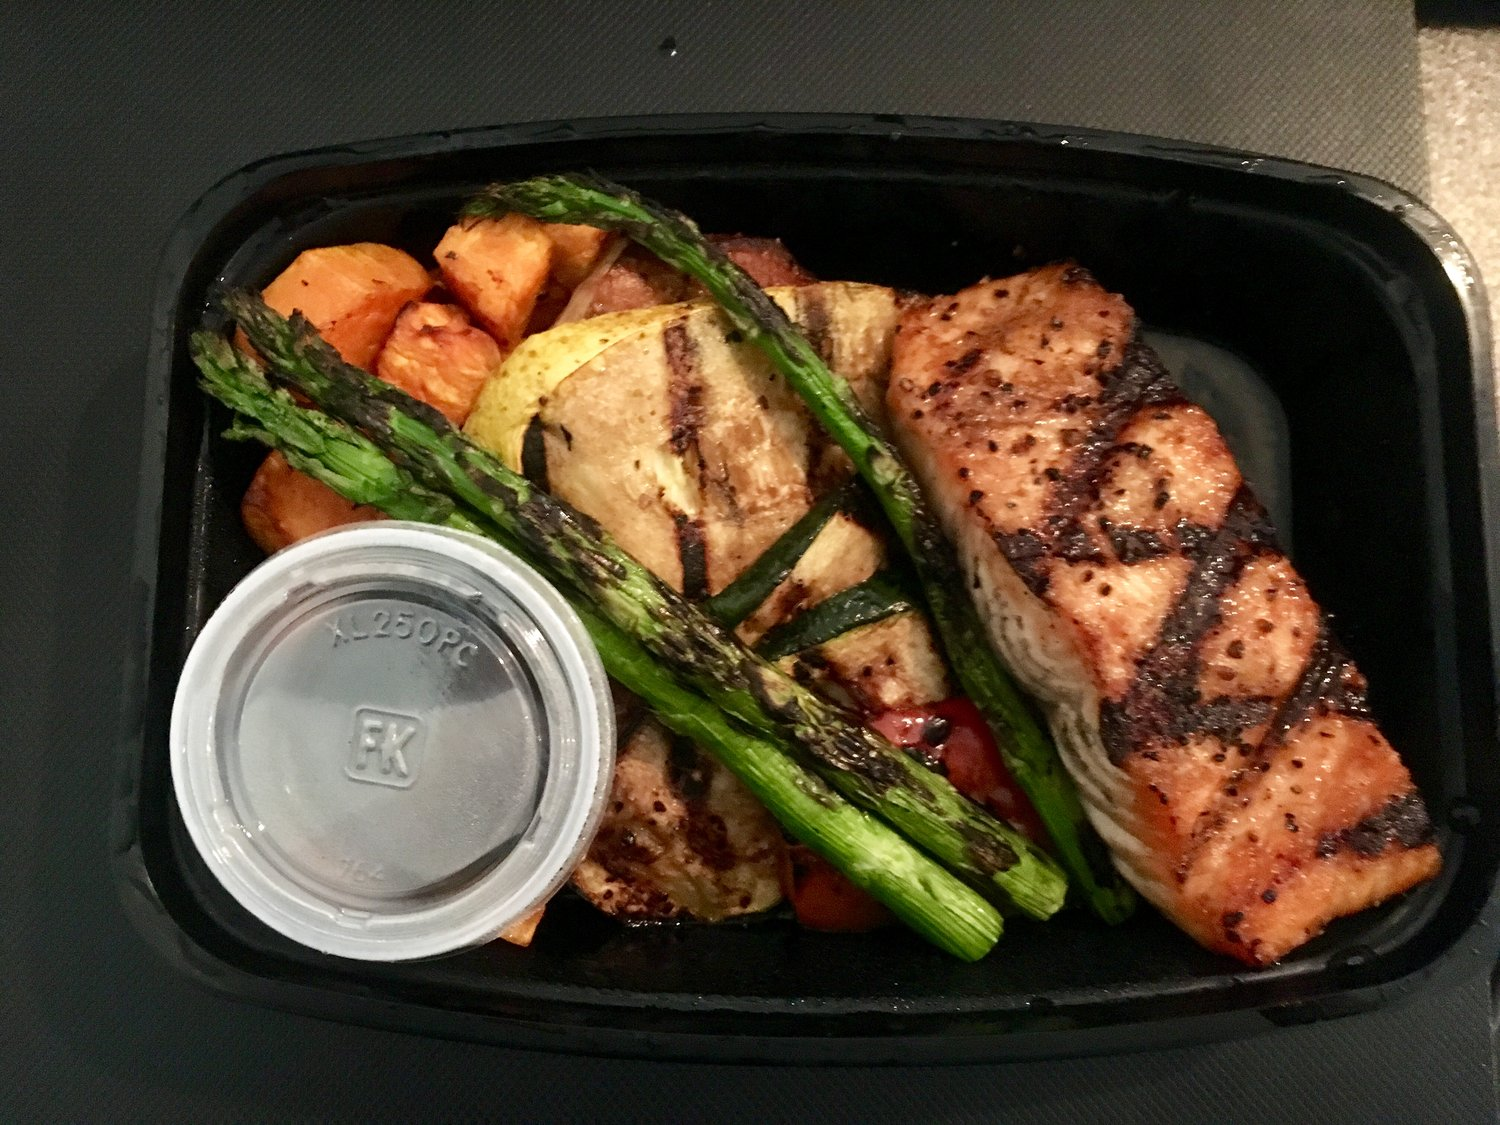 Chef Curry To Go Meal Prep Order Online — Chef Curry To Go